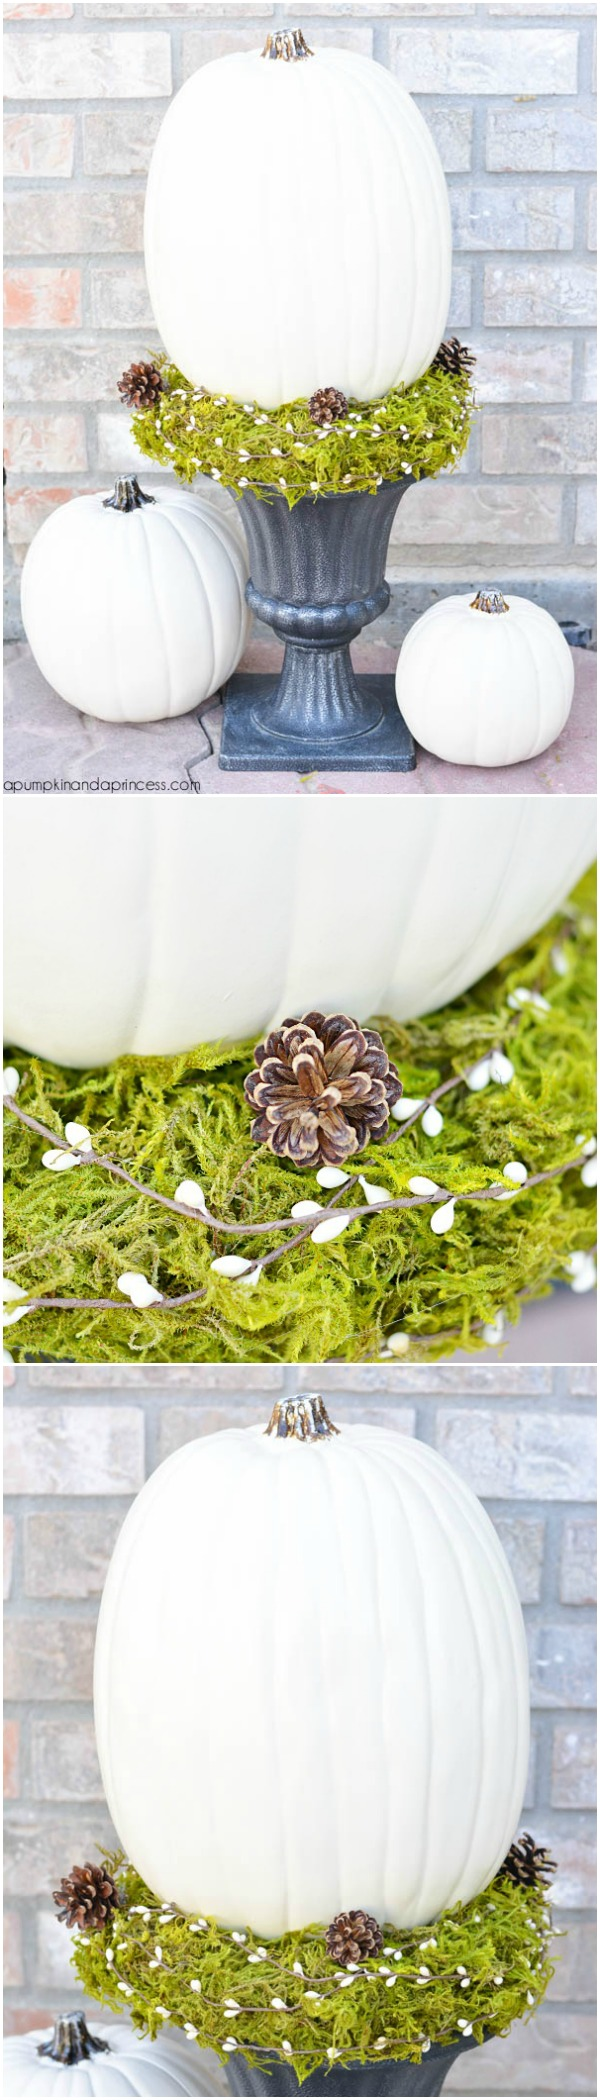 DIY-Pumpkin-Topiary-tutorial